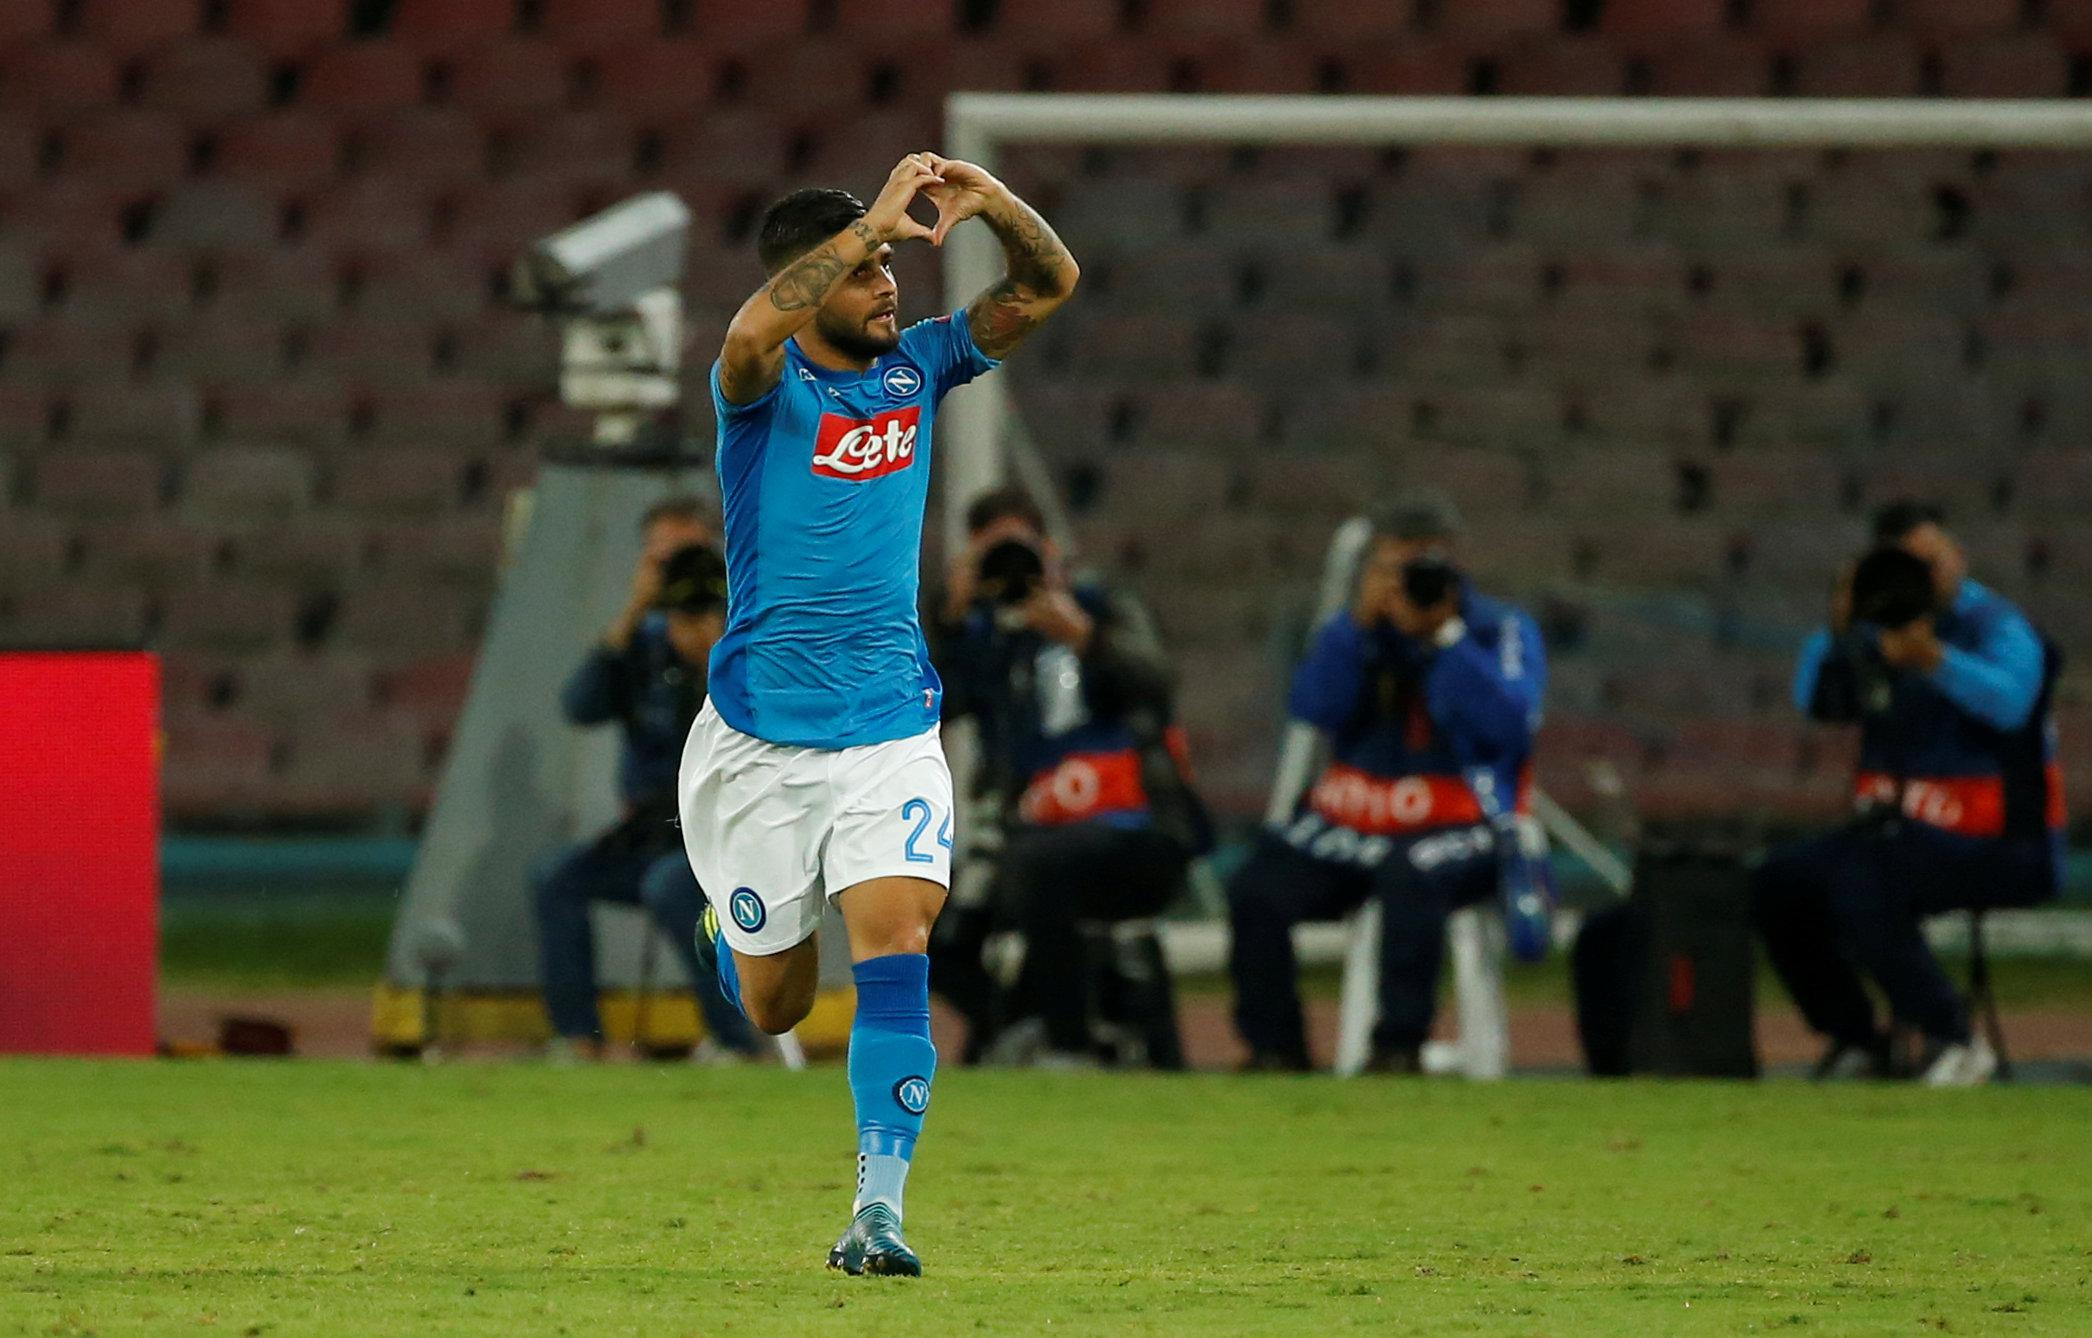 Insigne's thought turned to his injured team-mate straight away after scoring